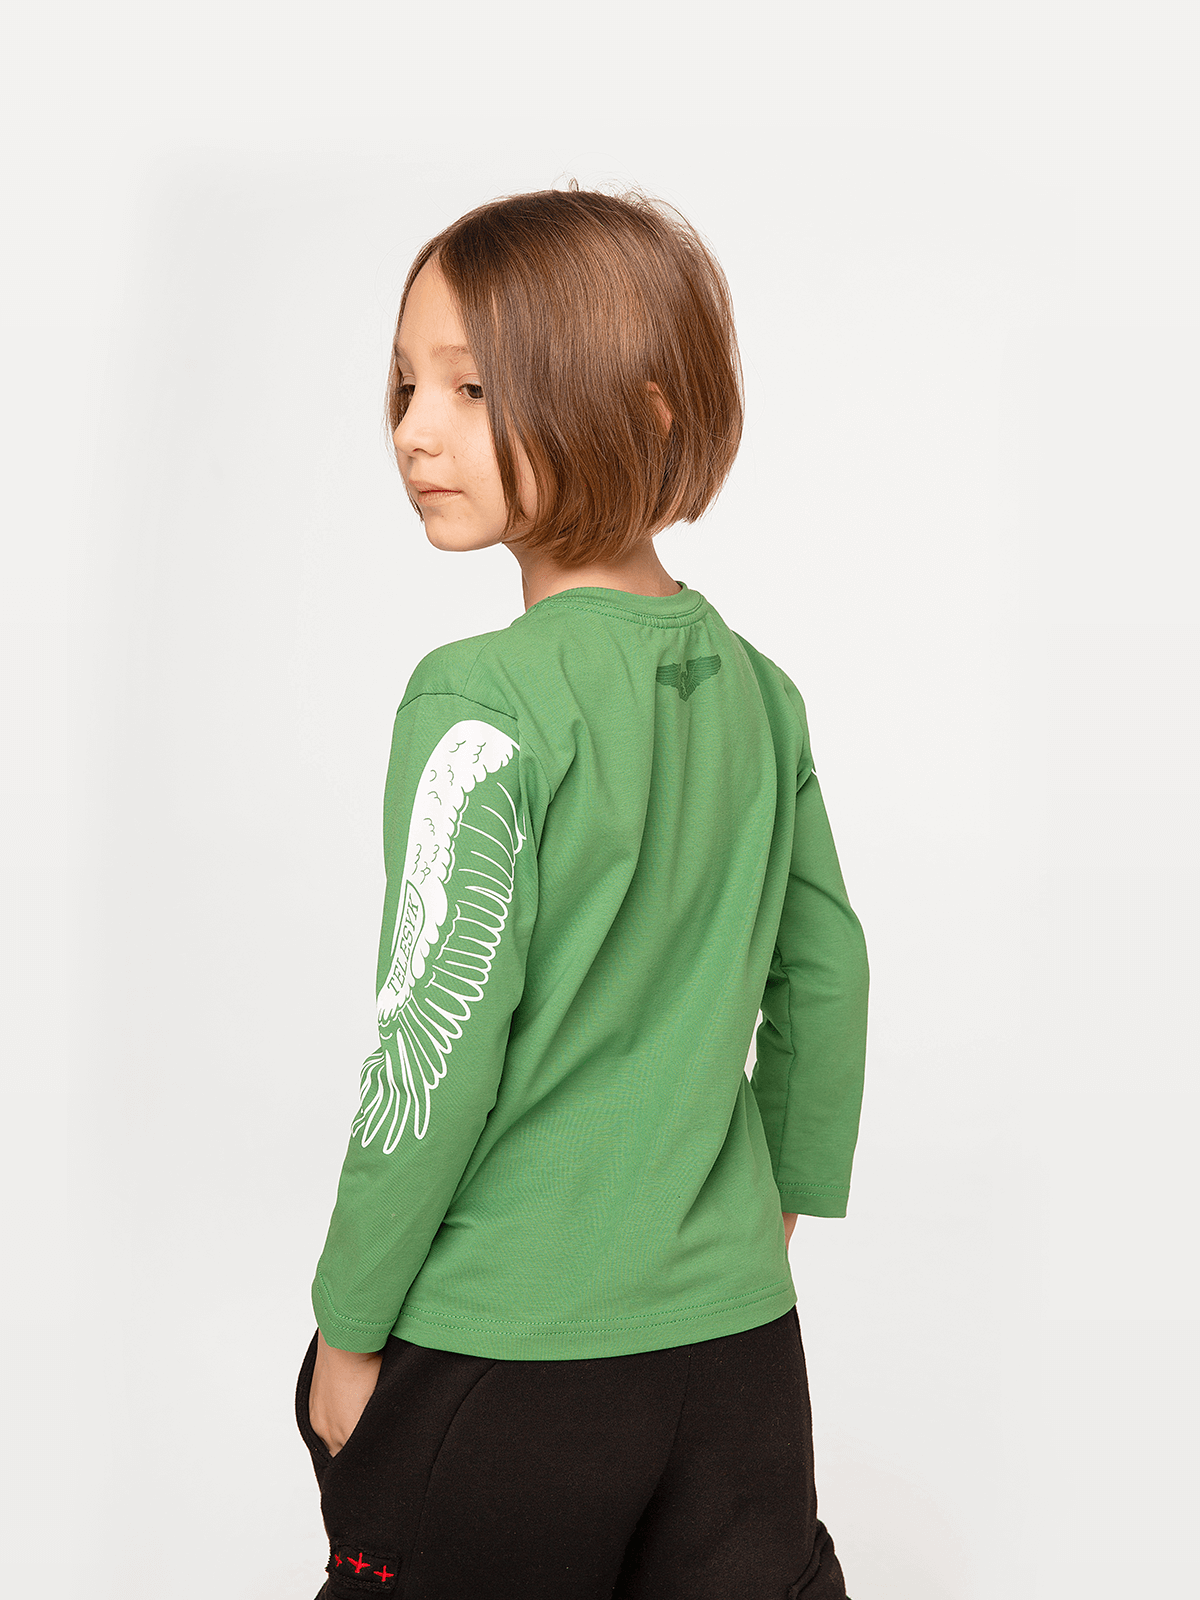 Kids Long Sleeves Stork. 2.